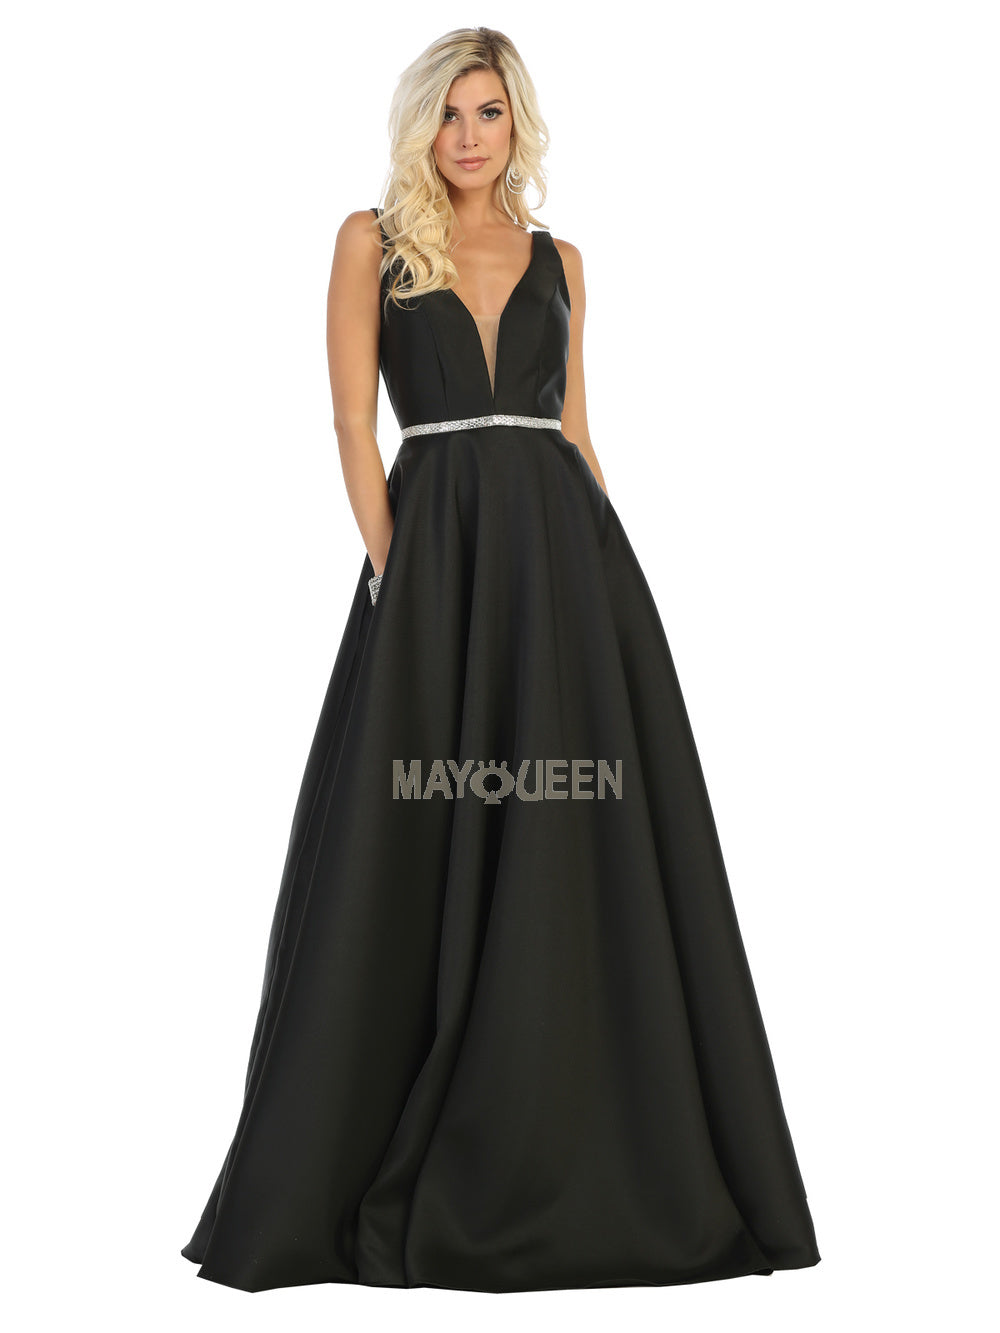 Mayqueen Size Chart E MQ 1683 - A-Line with Deep-V Neckline Jeweled Belt & Pockets - Diggz Prom